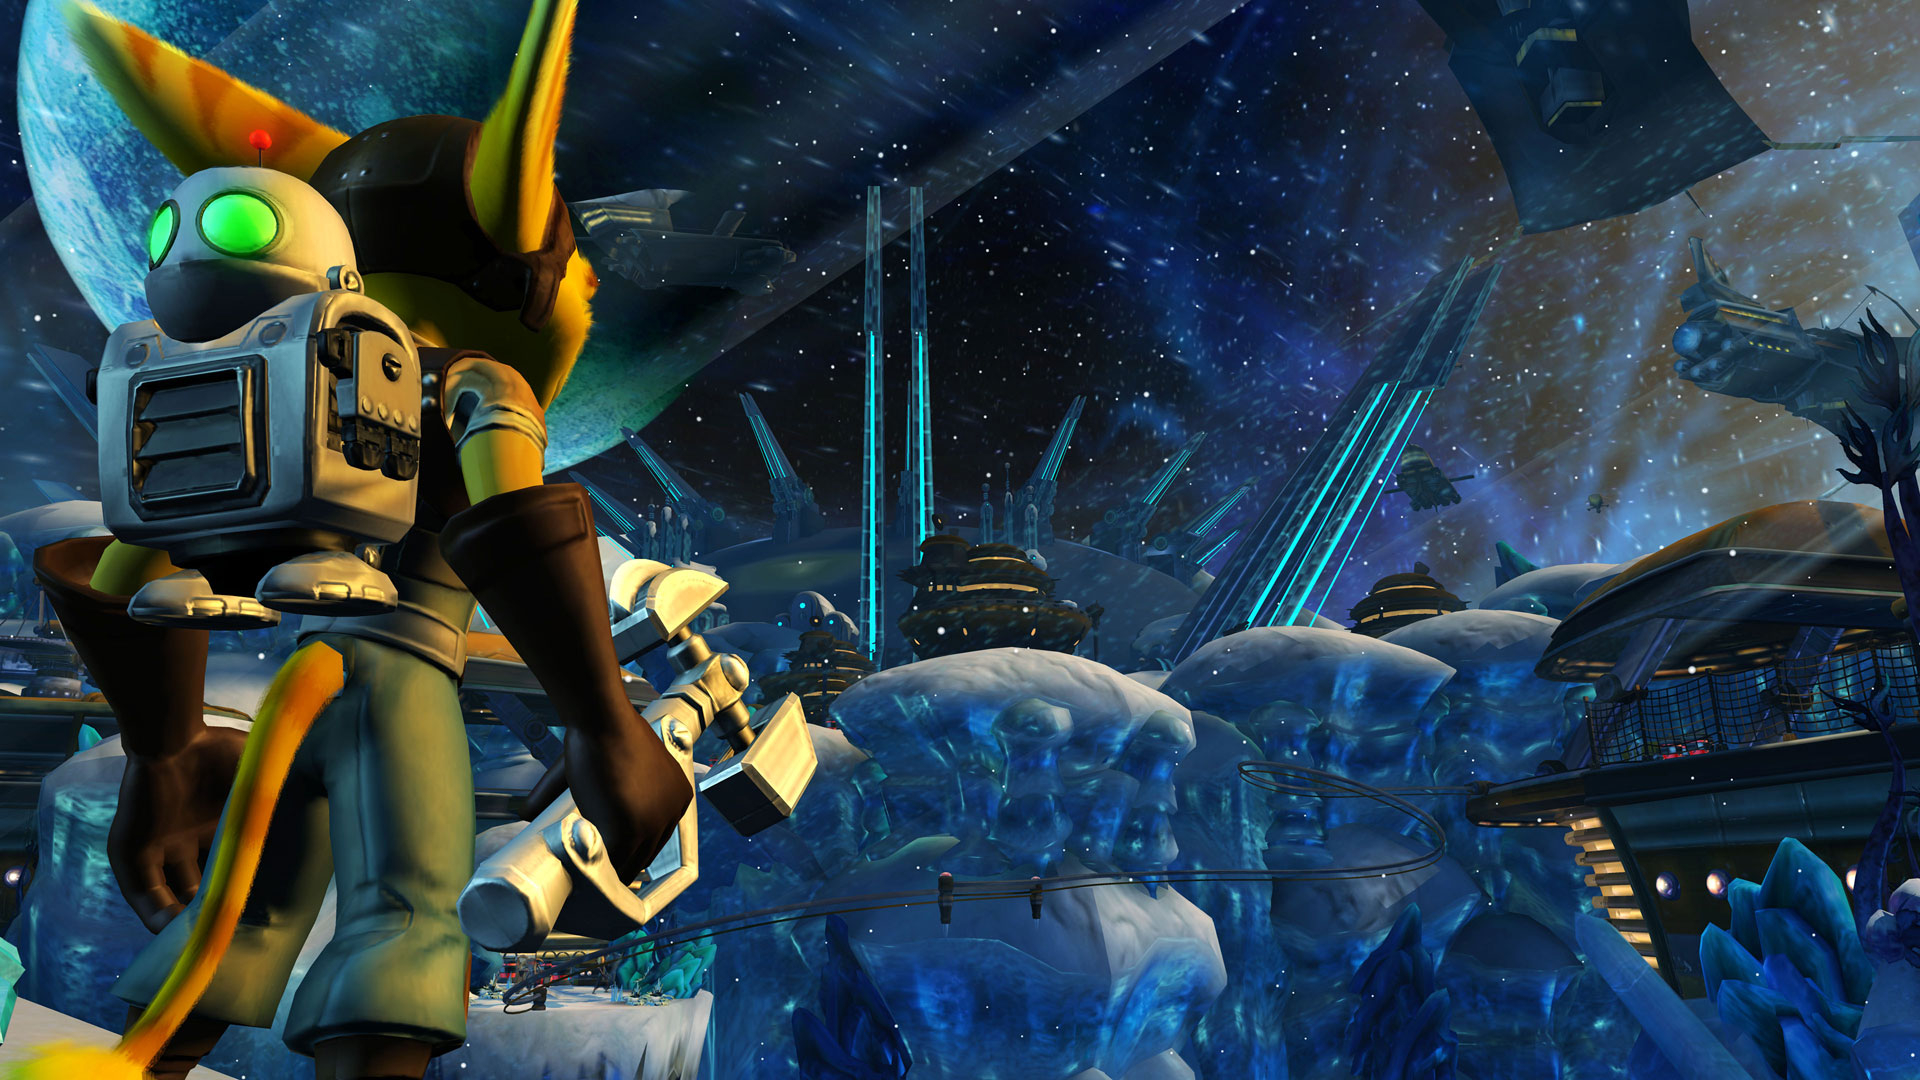 Rumor Ratchet Clank Trilogy Could Be Coming To Ps Vita Take A